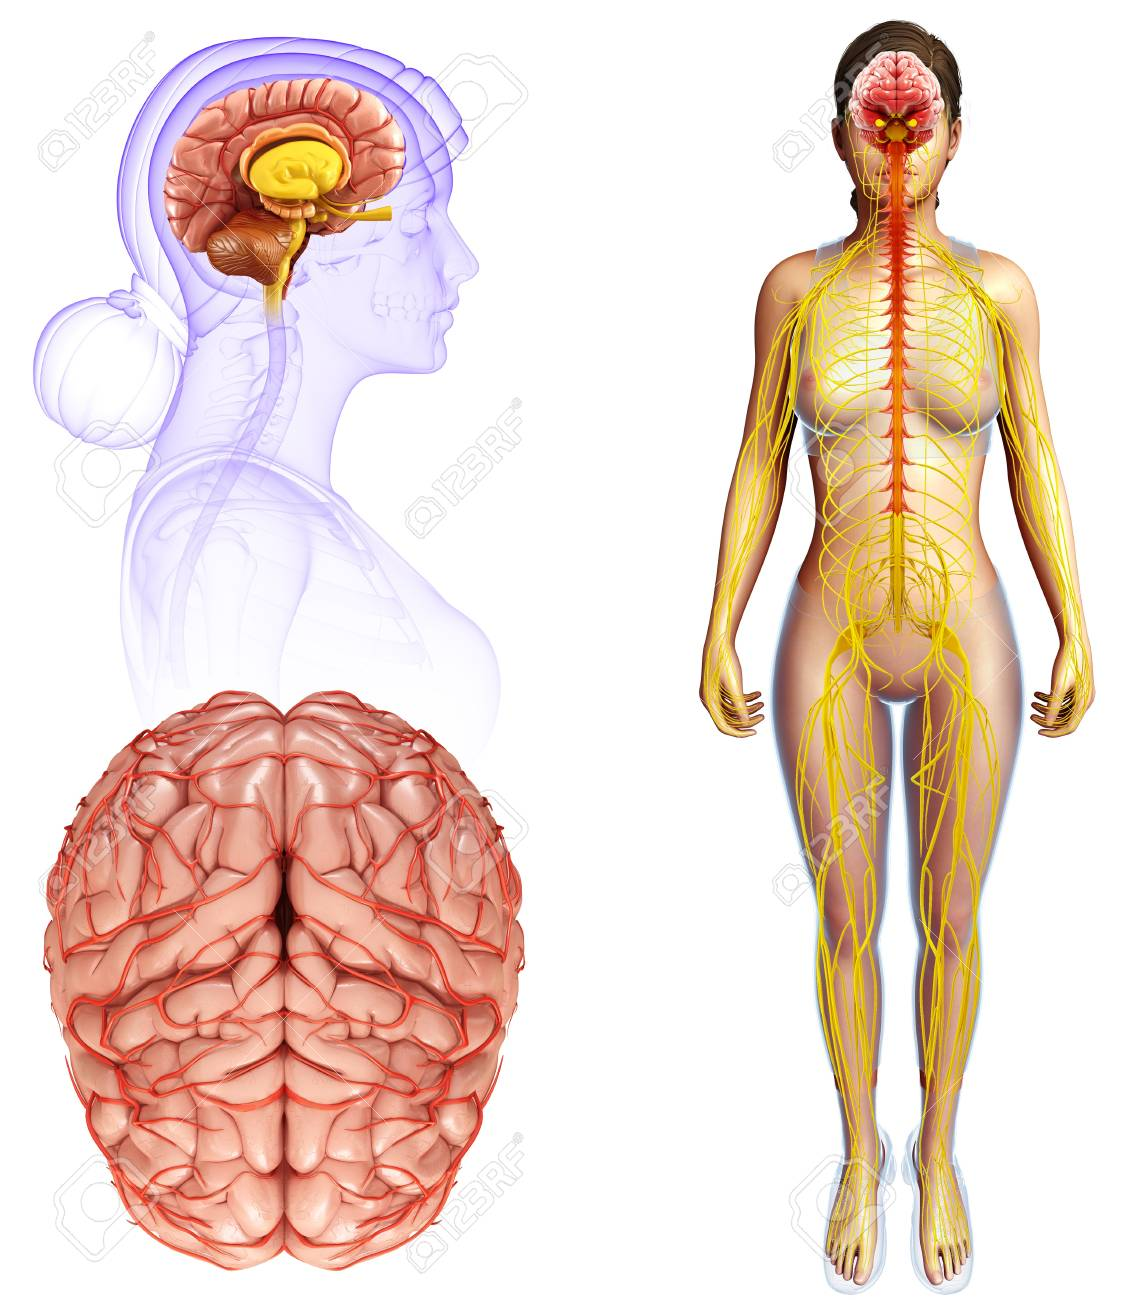 Human Brain Anatomy, Illustration Lizenzfreie Fotos, Bilder Und ...